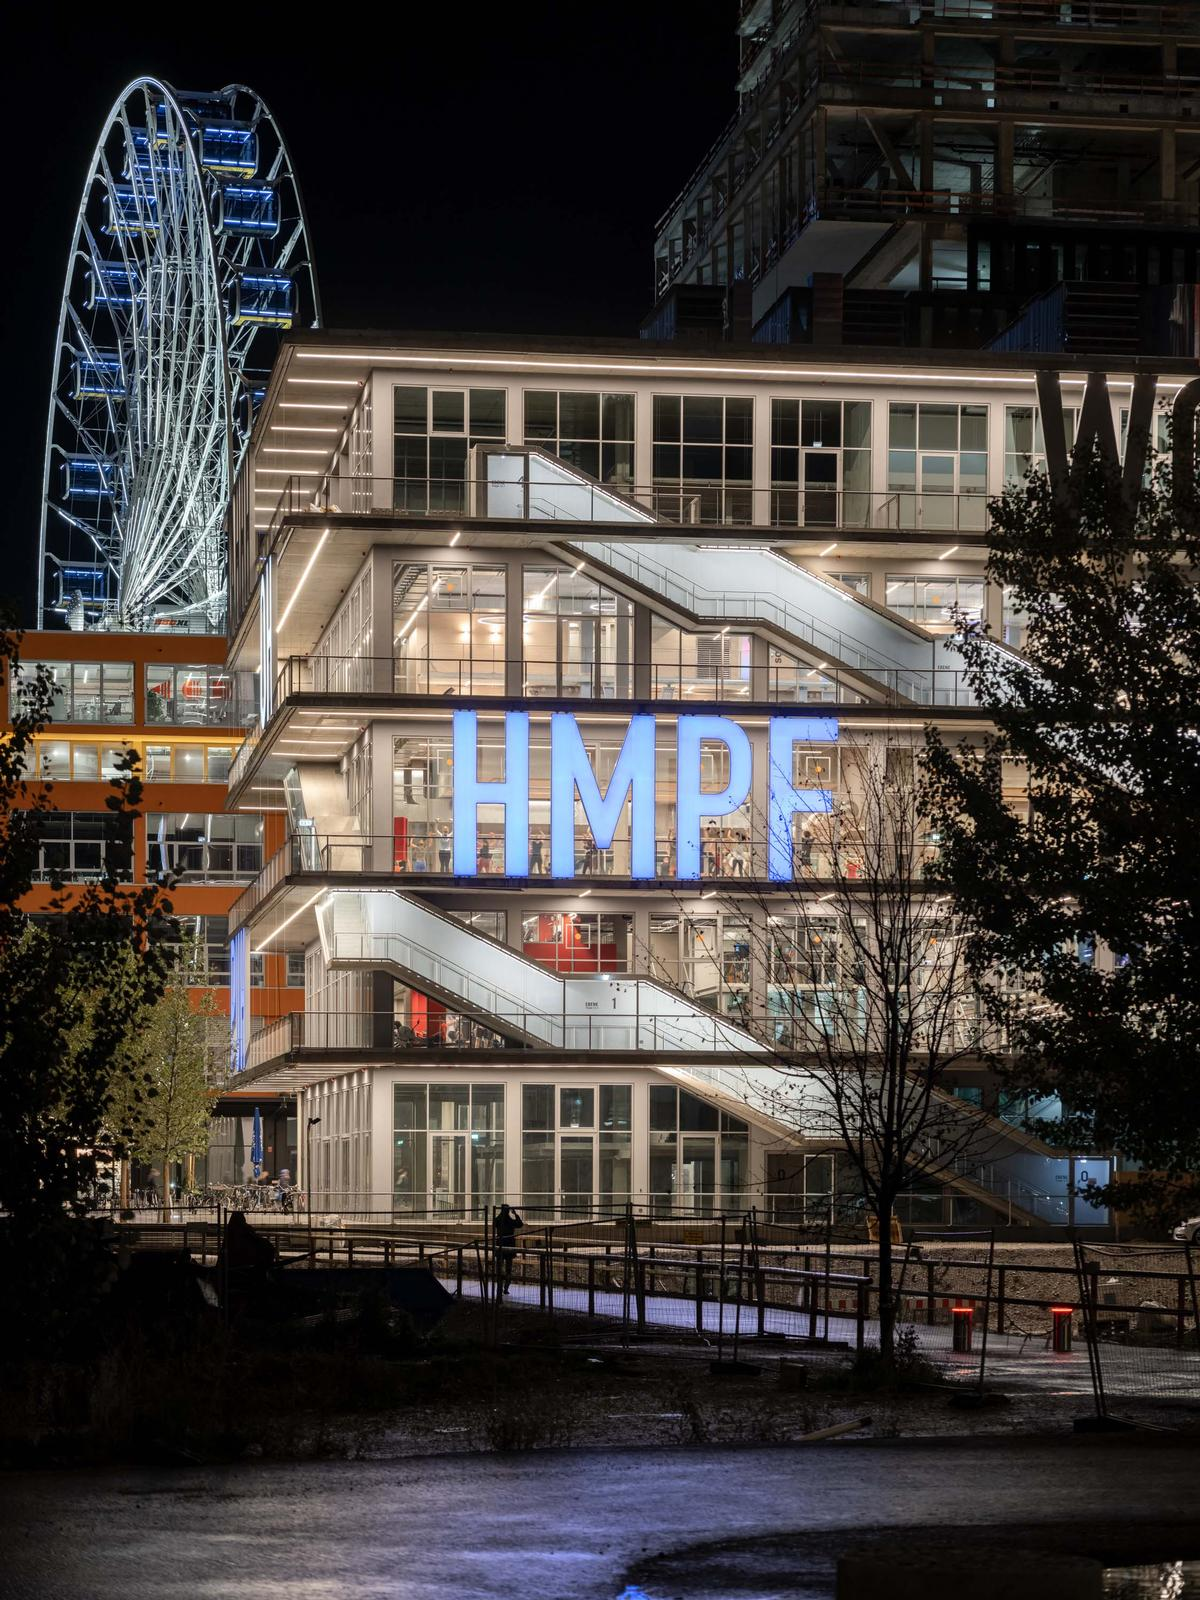 It comprises 5m (16ft)-tall lettering that spells out colloquial expressions / MVRDV